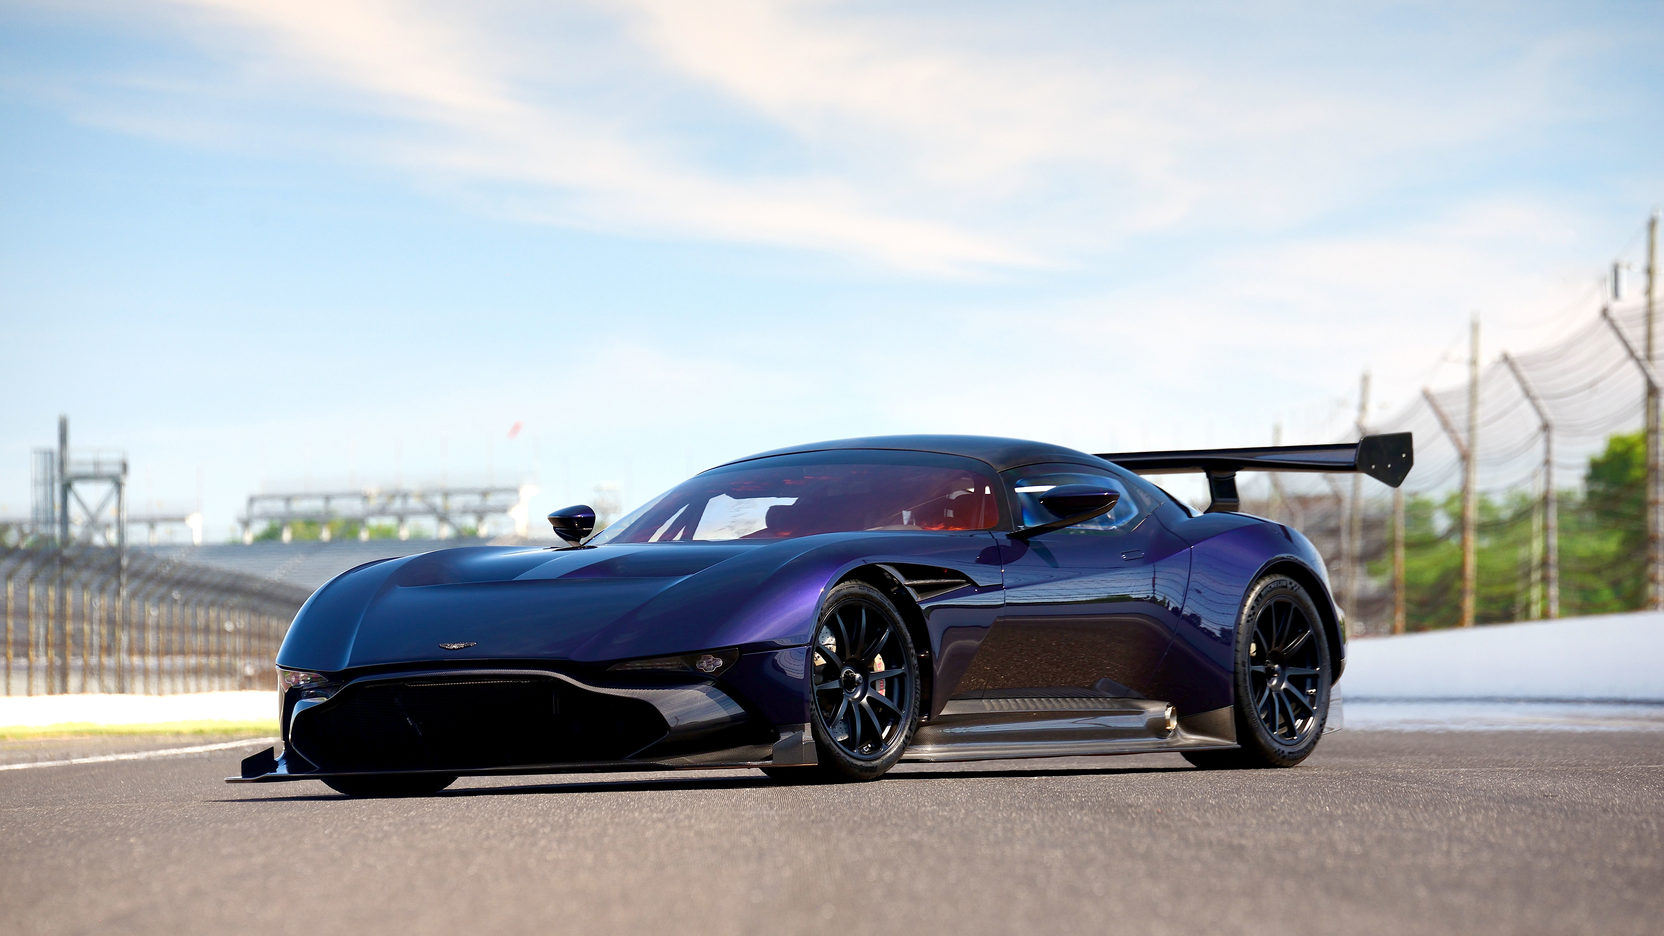 medium resolution of there s an aston martin vulcan for sale for 2 4million